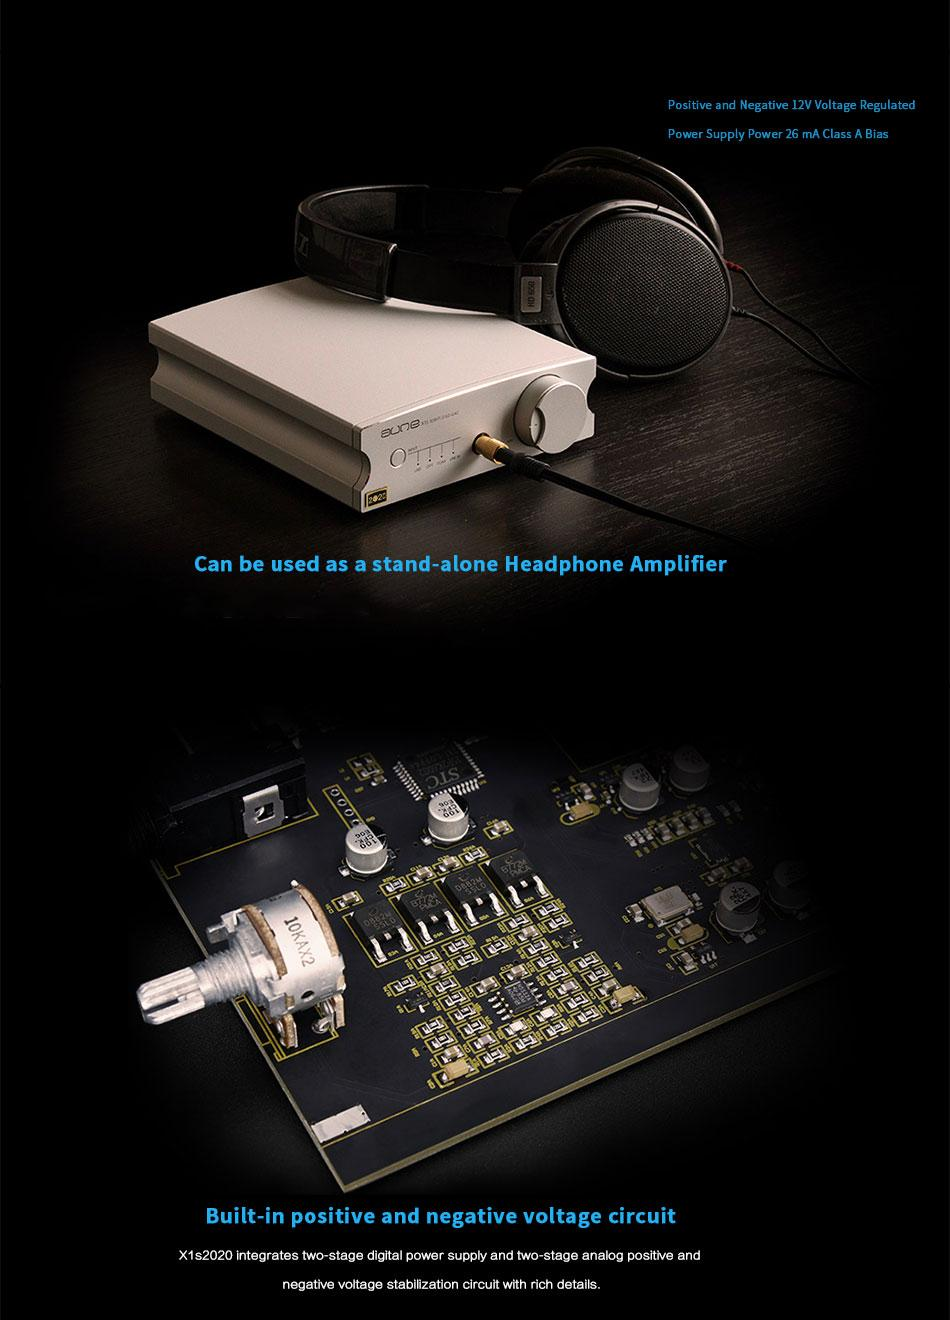 AUNE-X1S-2020-Home-HIFI-DAC-Headphone-Amplifier-ES9038Q2M-DSD512-USB-DAC-Headphone-Amp-32BIT768K-DOP128-DOP64-4001095934970